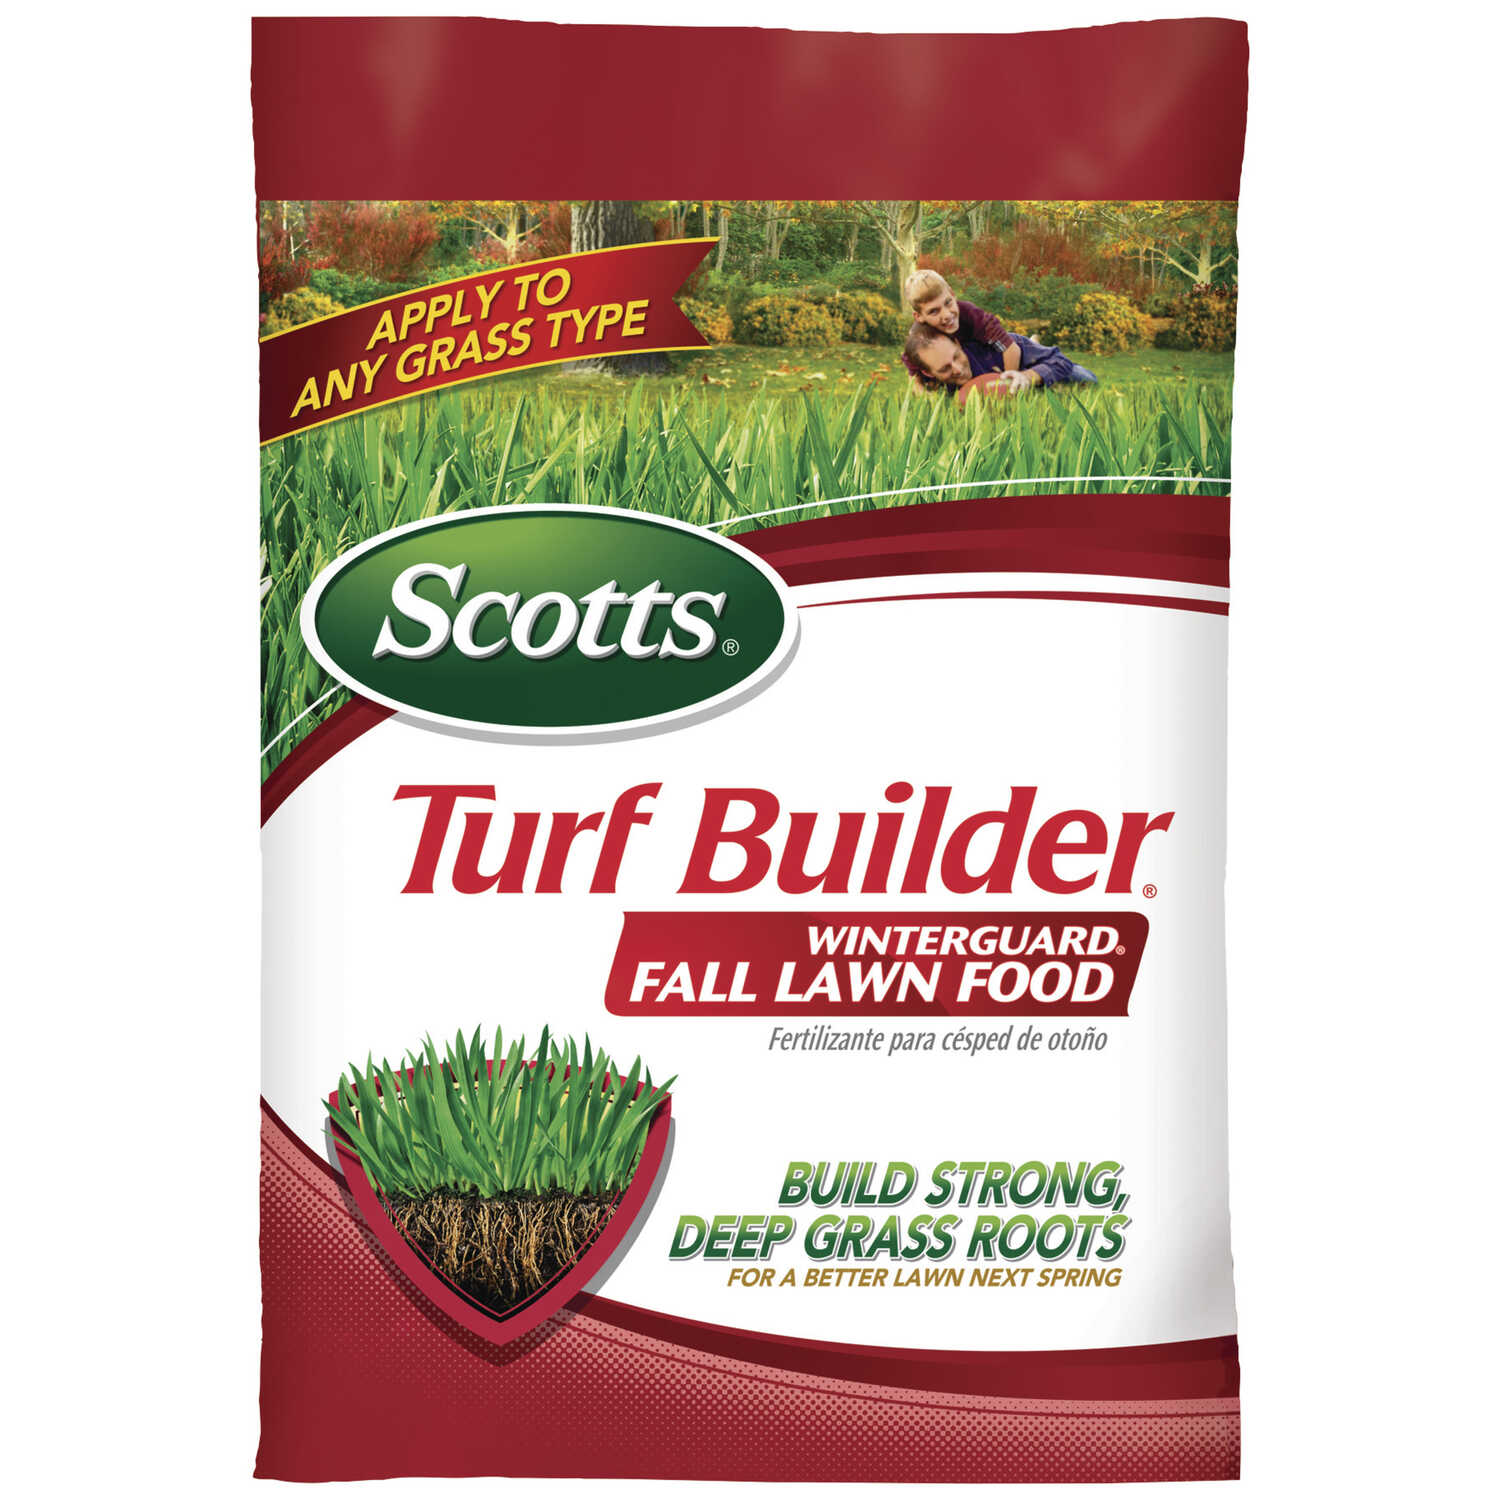 Scotts  Turf Builder Winterguard  32-0-10  Lawn Food  For All Grass Types 37.5 lb. 15000 sq. ft.